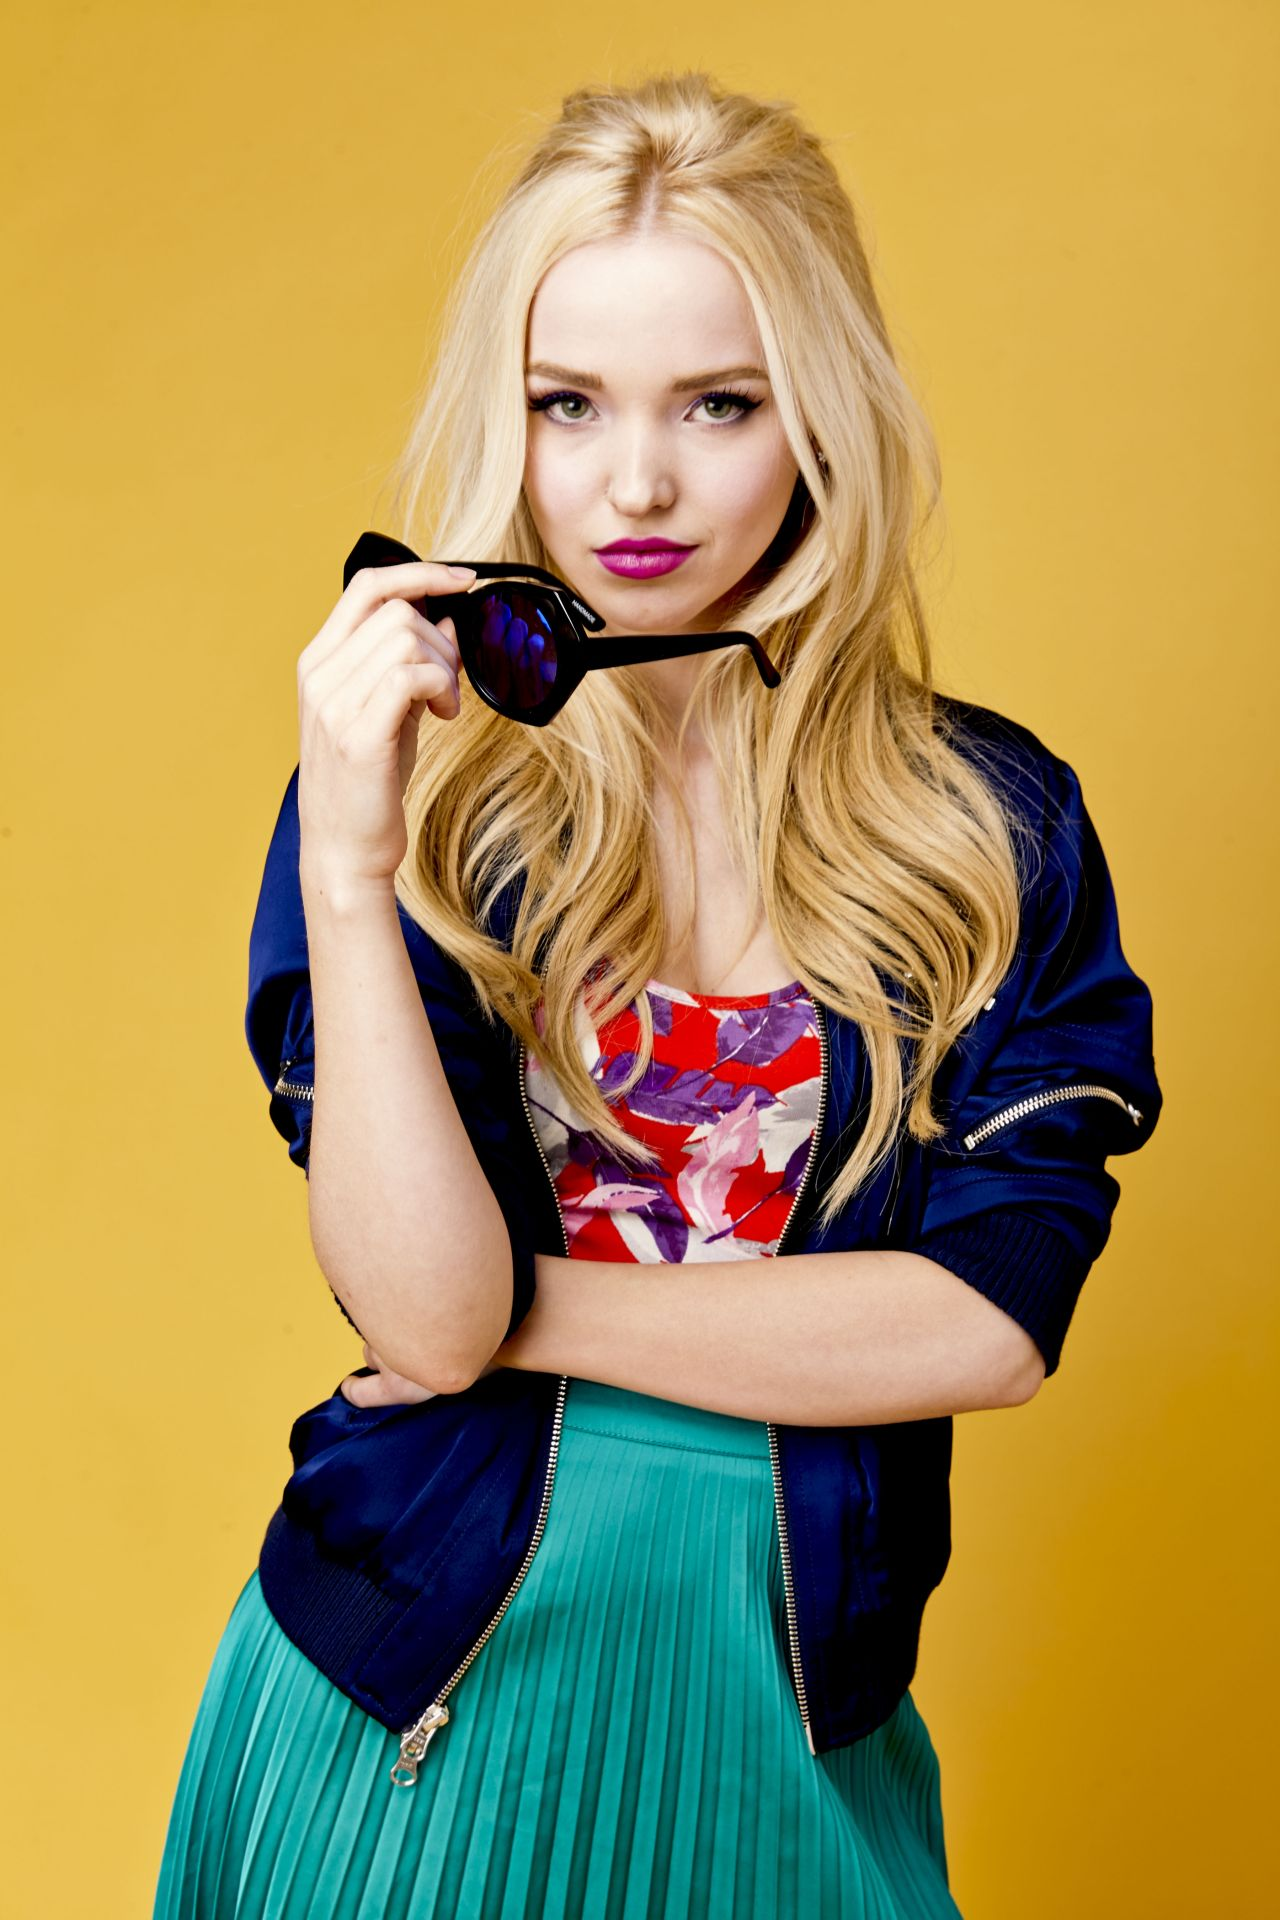 dove-cameron-tigerbeat-magazine-photoshoot-2016-7.jpg